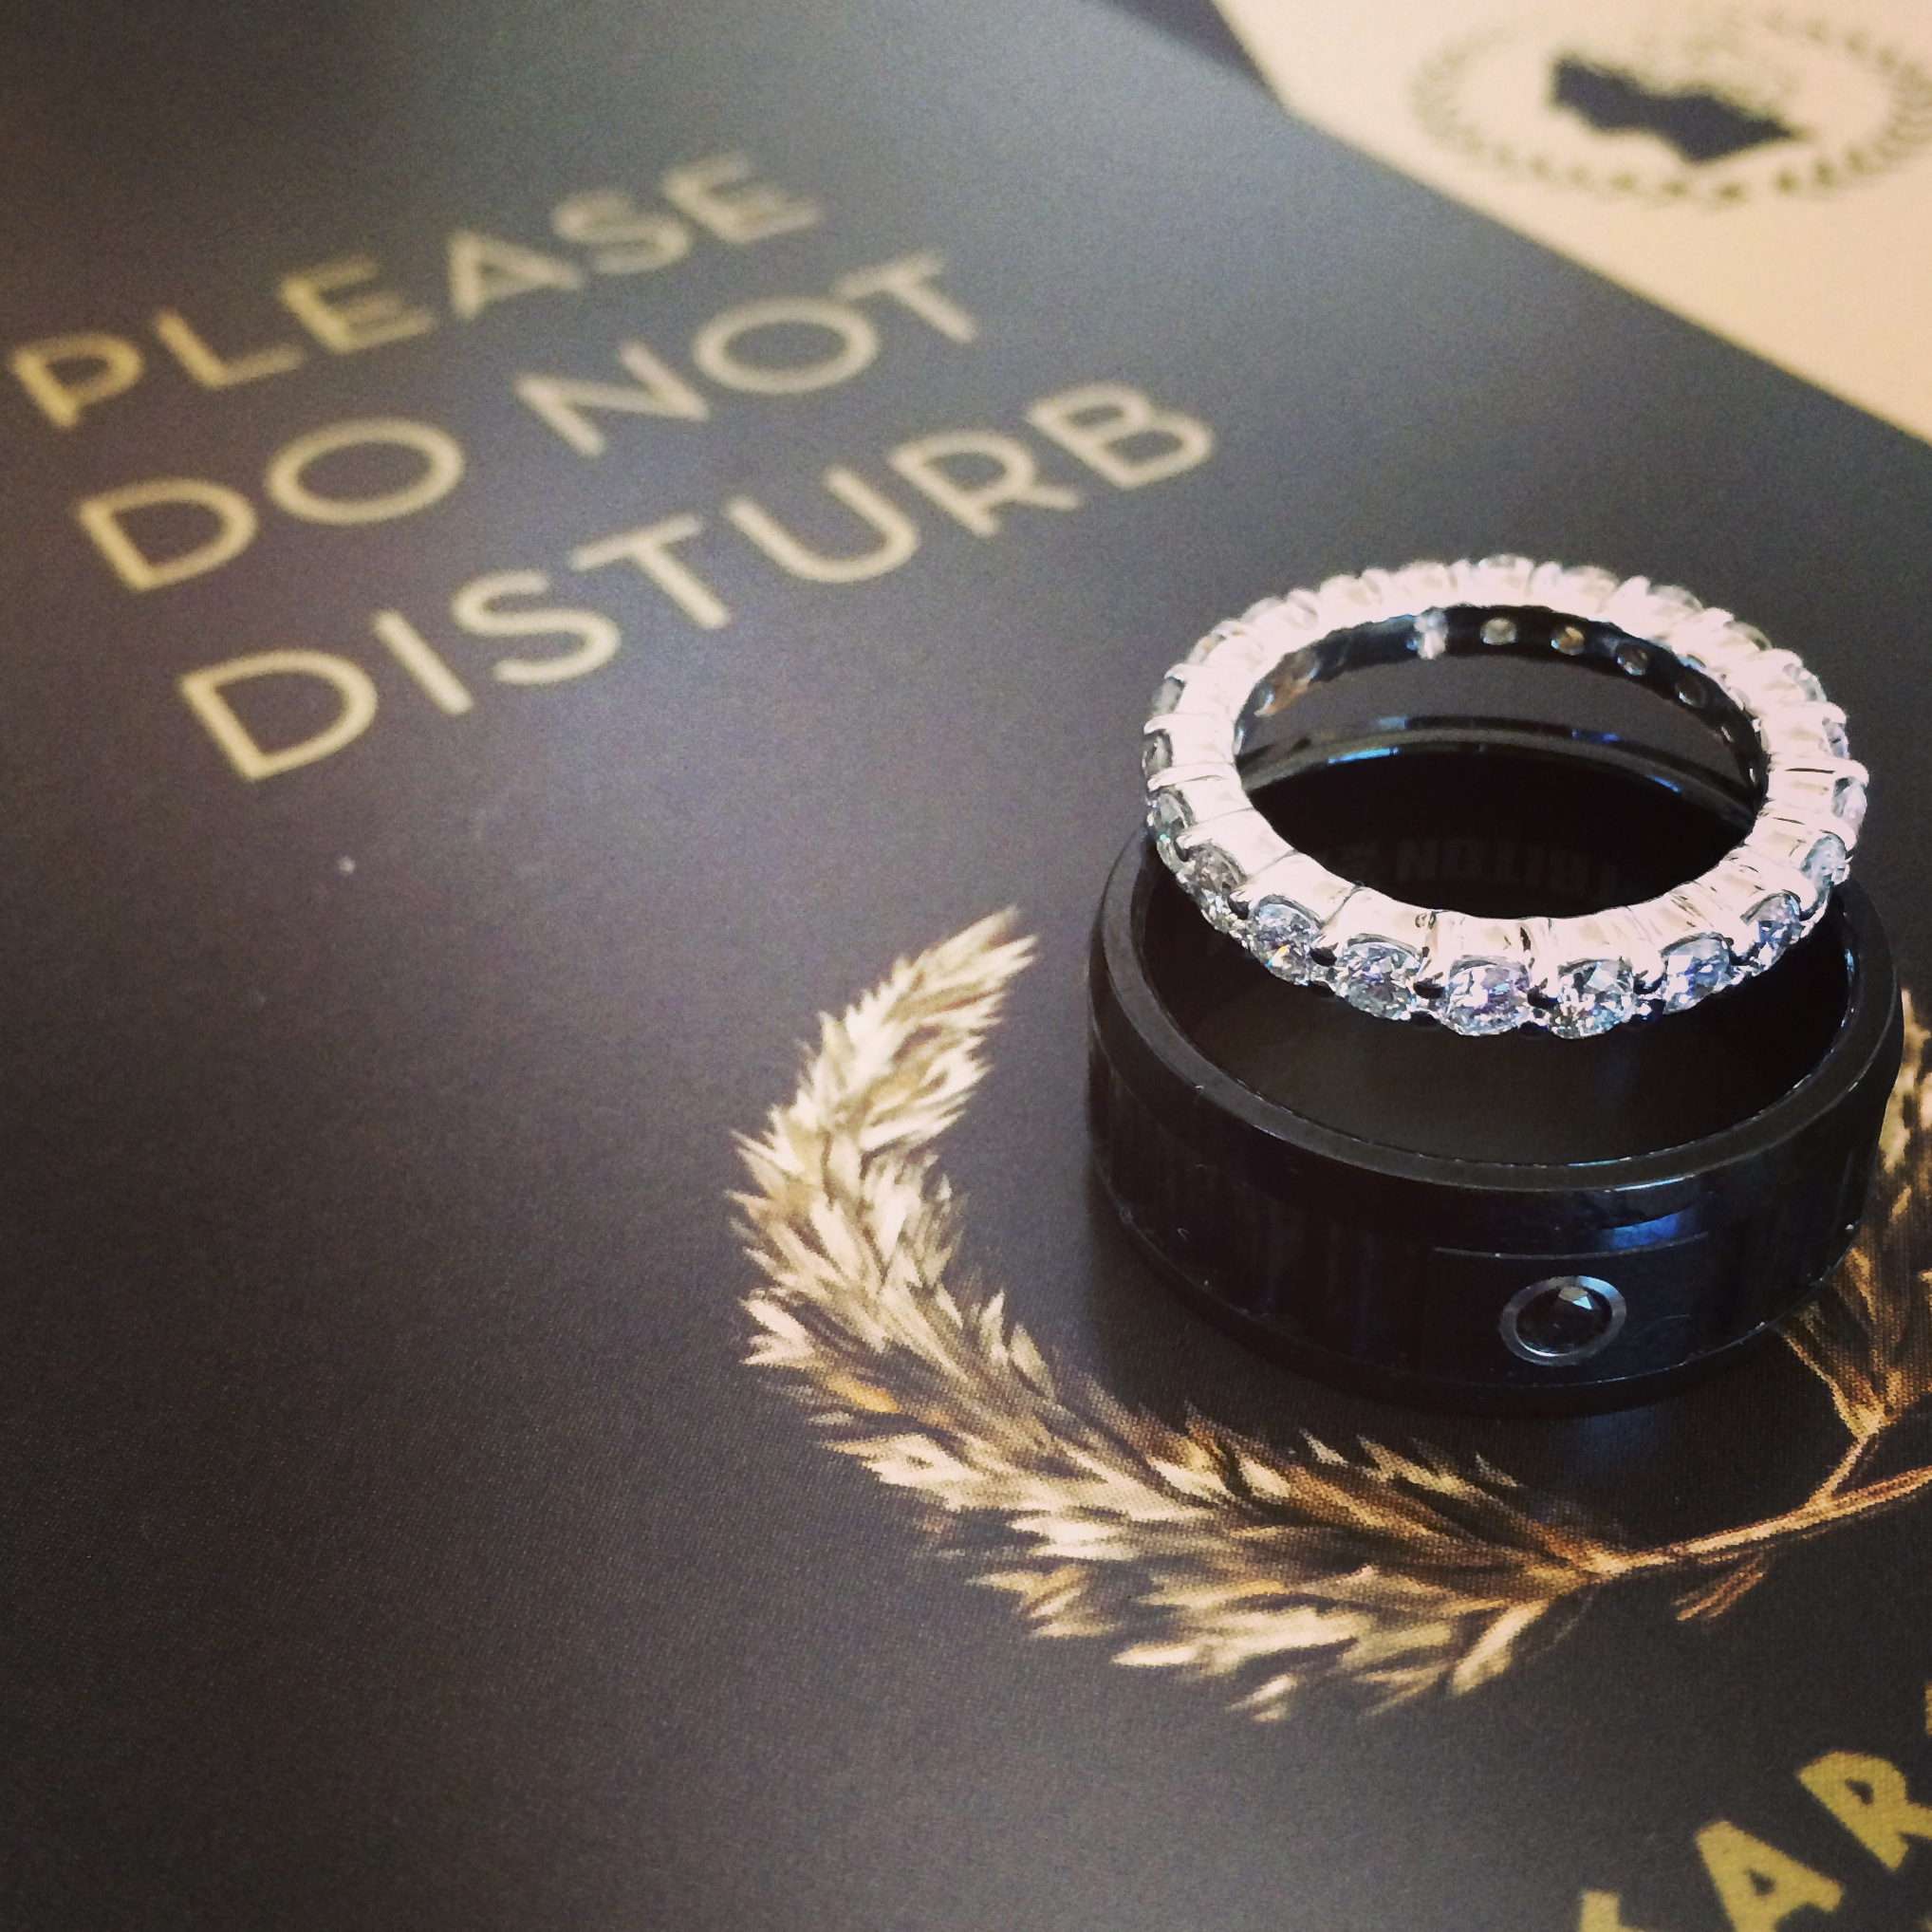 Please Do Not Disturb - There are people getting married in the penthouse at Caesars Palace Las Vegas!  Photo by Andrea Eppolito .